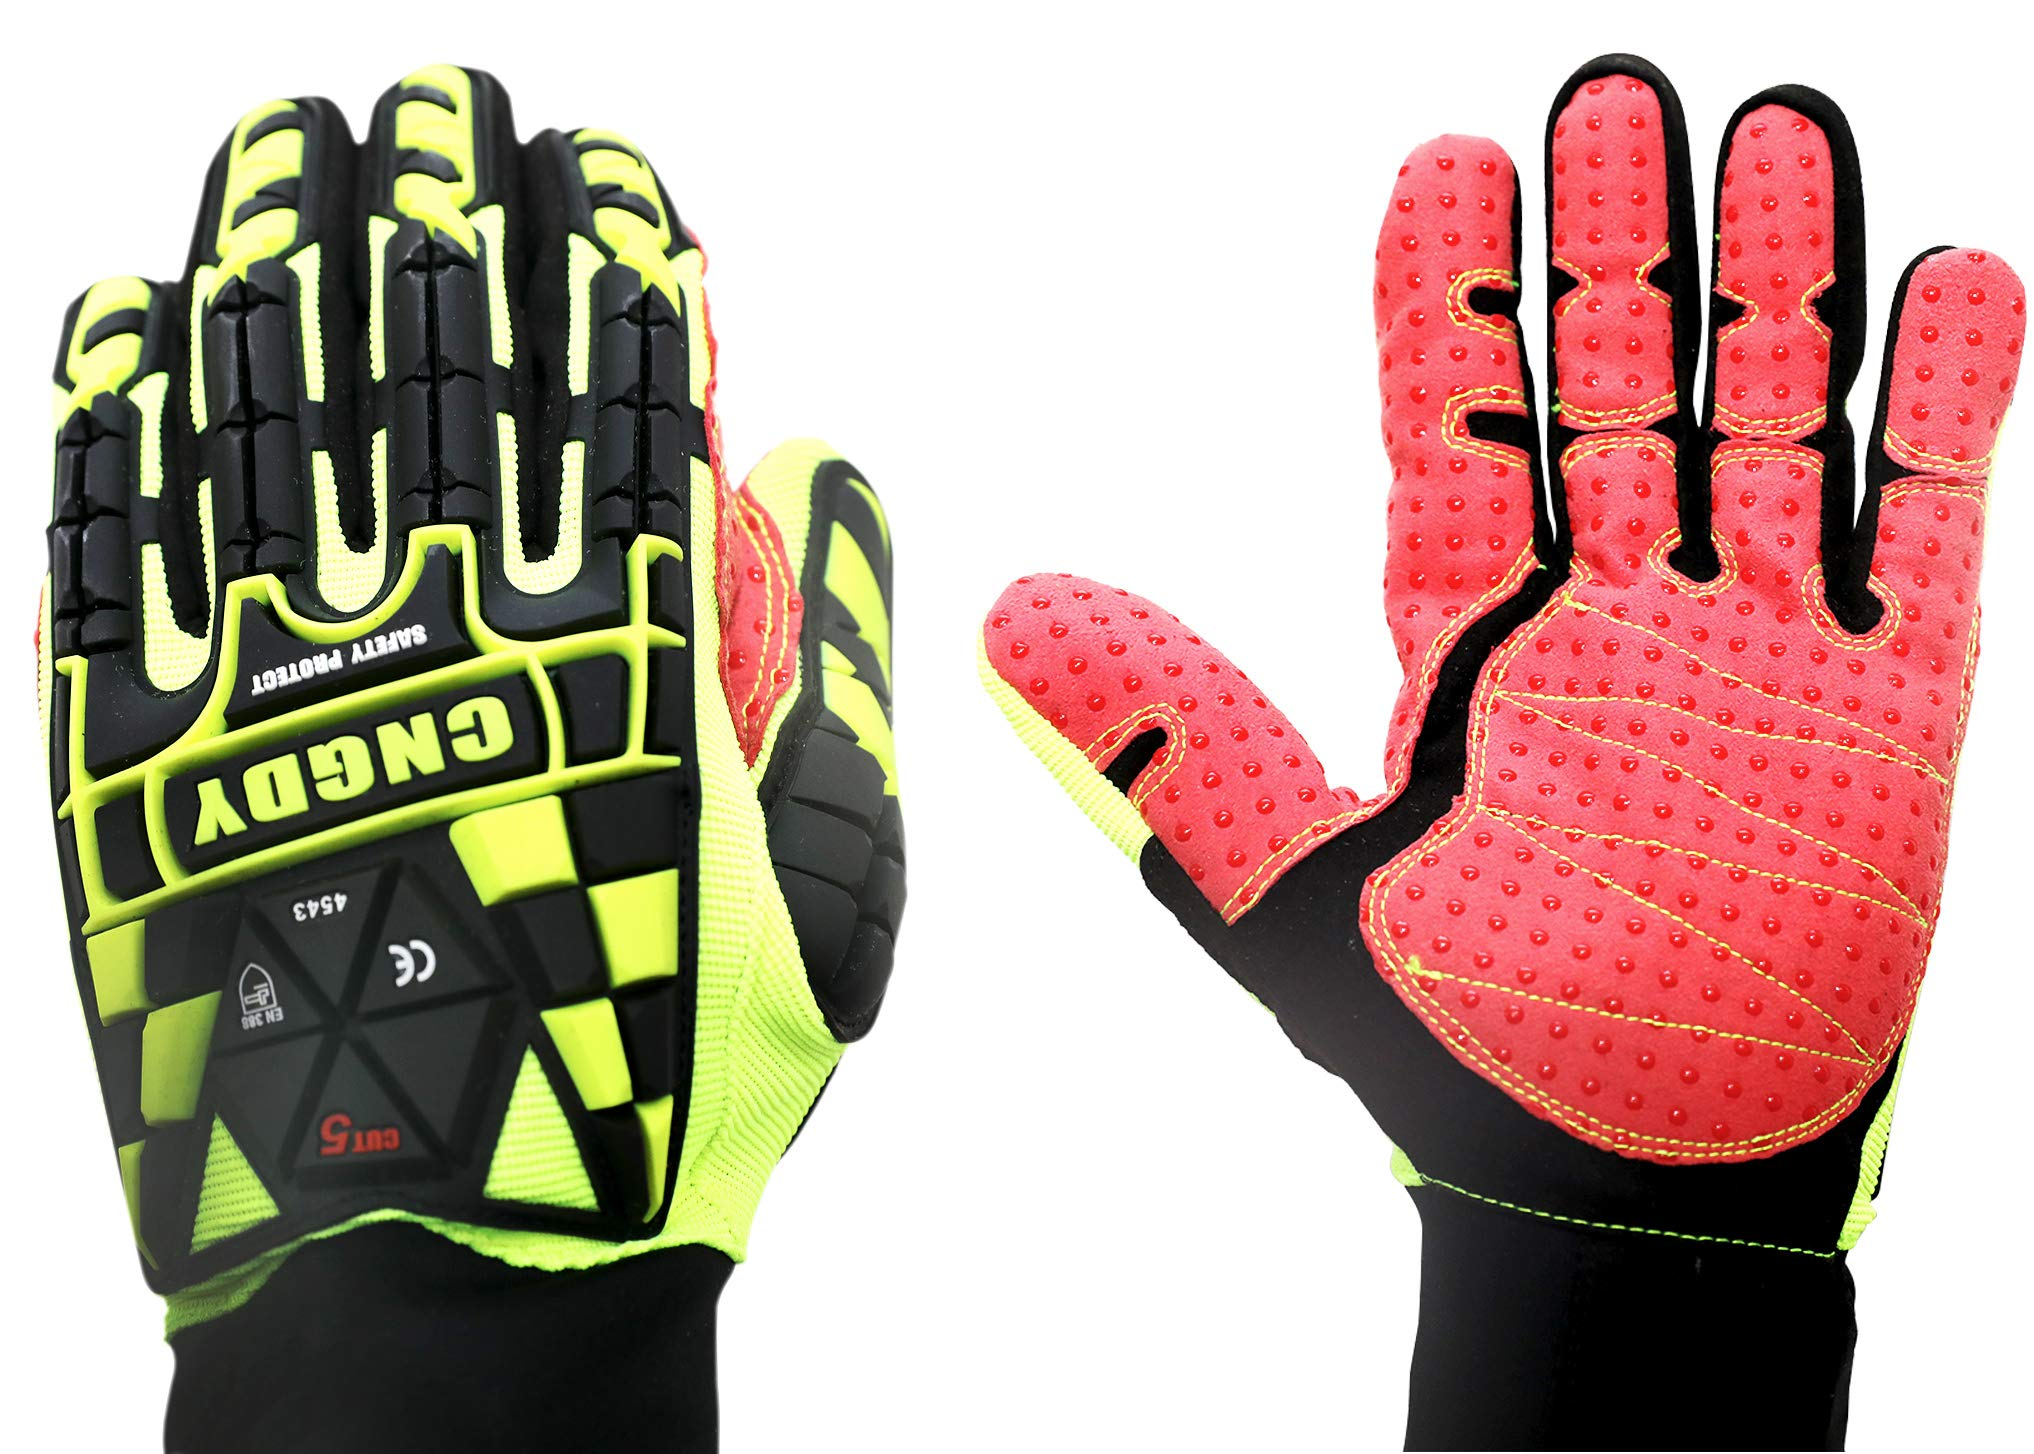 CNGDY Industrial Oil & Gas Gloves Impact Protection Cut Resistant Gloves Impact Reducing Safety Gloves High Abrasion Heavy Duty Safety TPR Pads Gloves Green Size XL